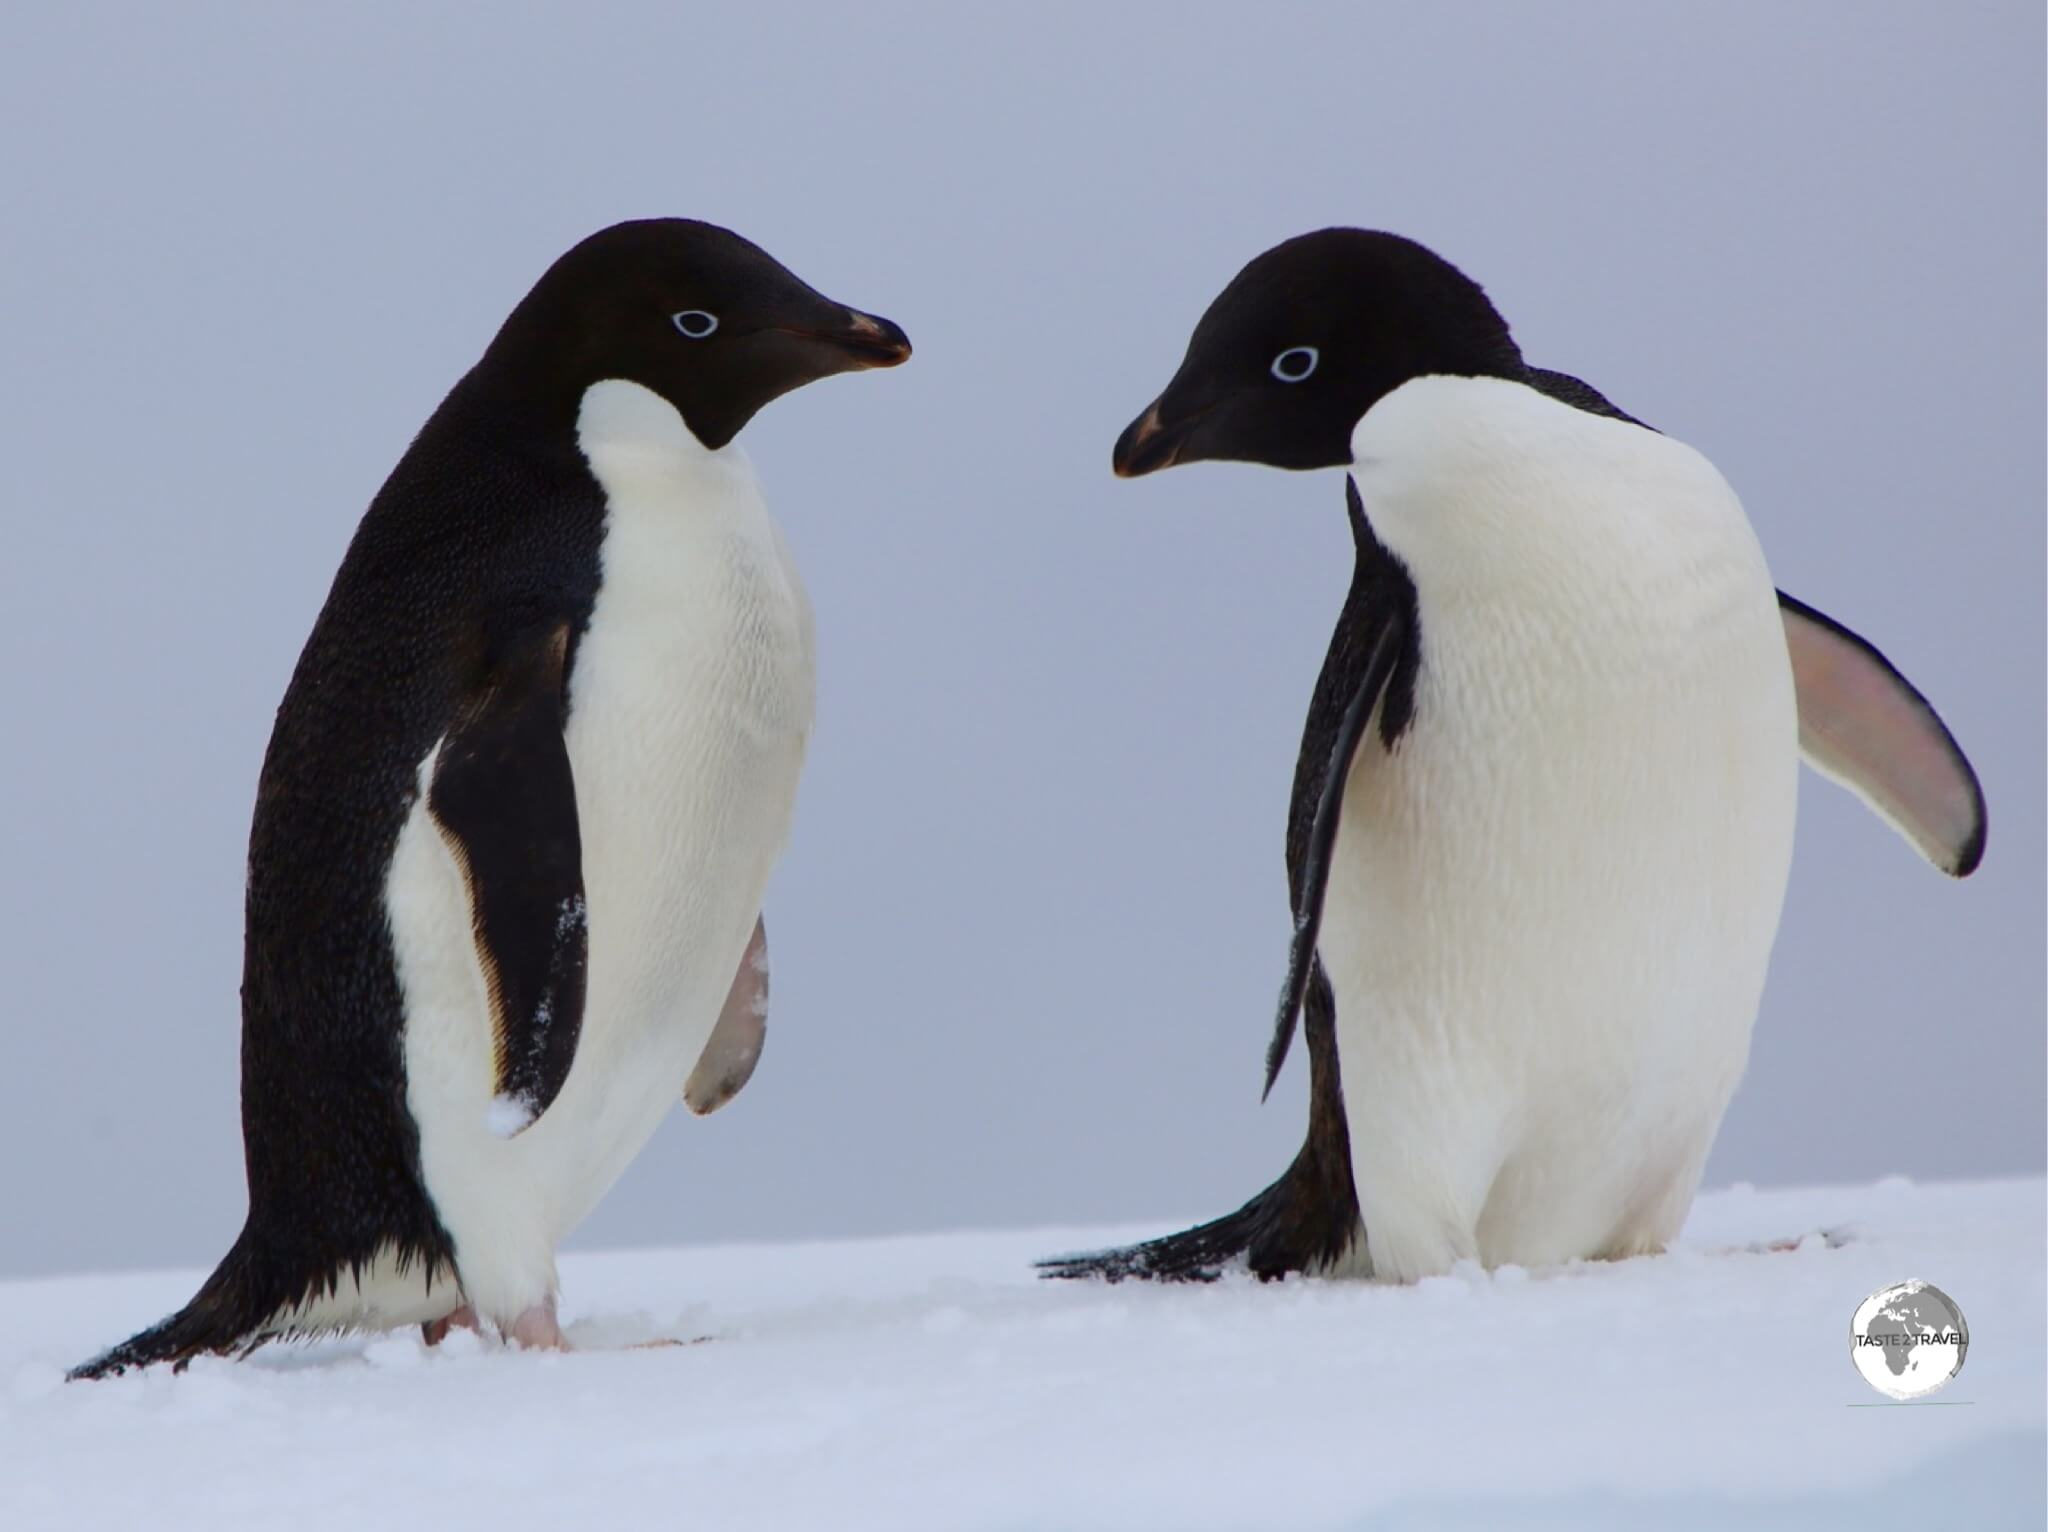 Adélie penguins were discovered in 1840 by scientists on a French Antarctic expedition, who named them after the wife (Adéle) of the expedition leader Jules Dumont d'Urville.